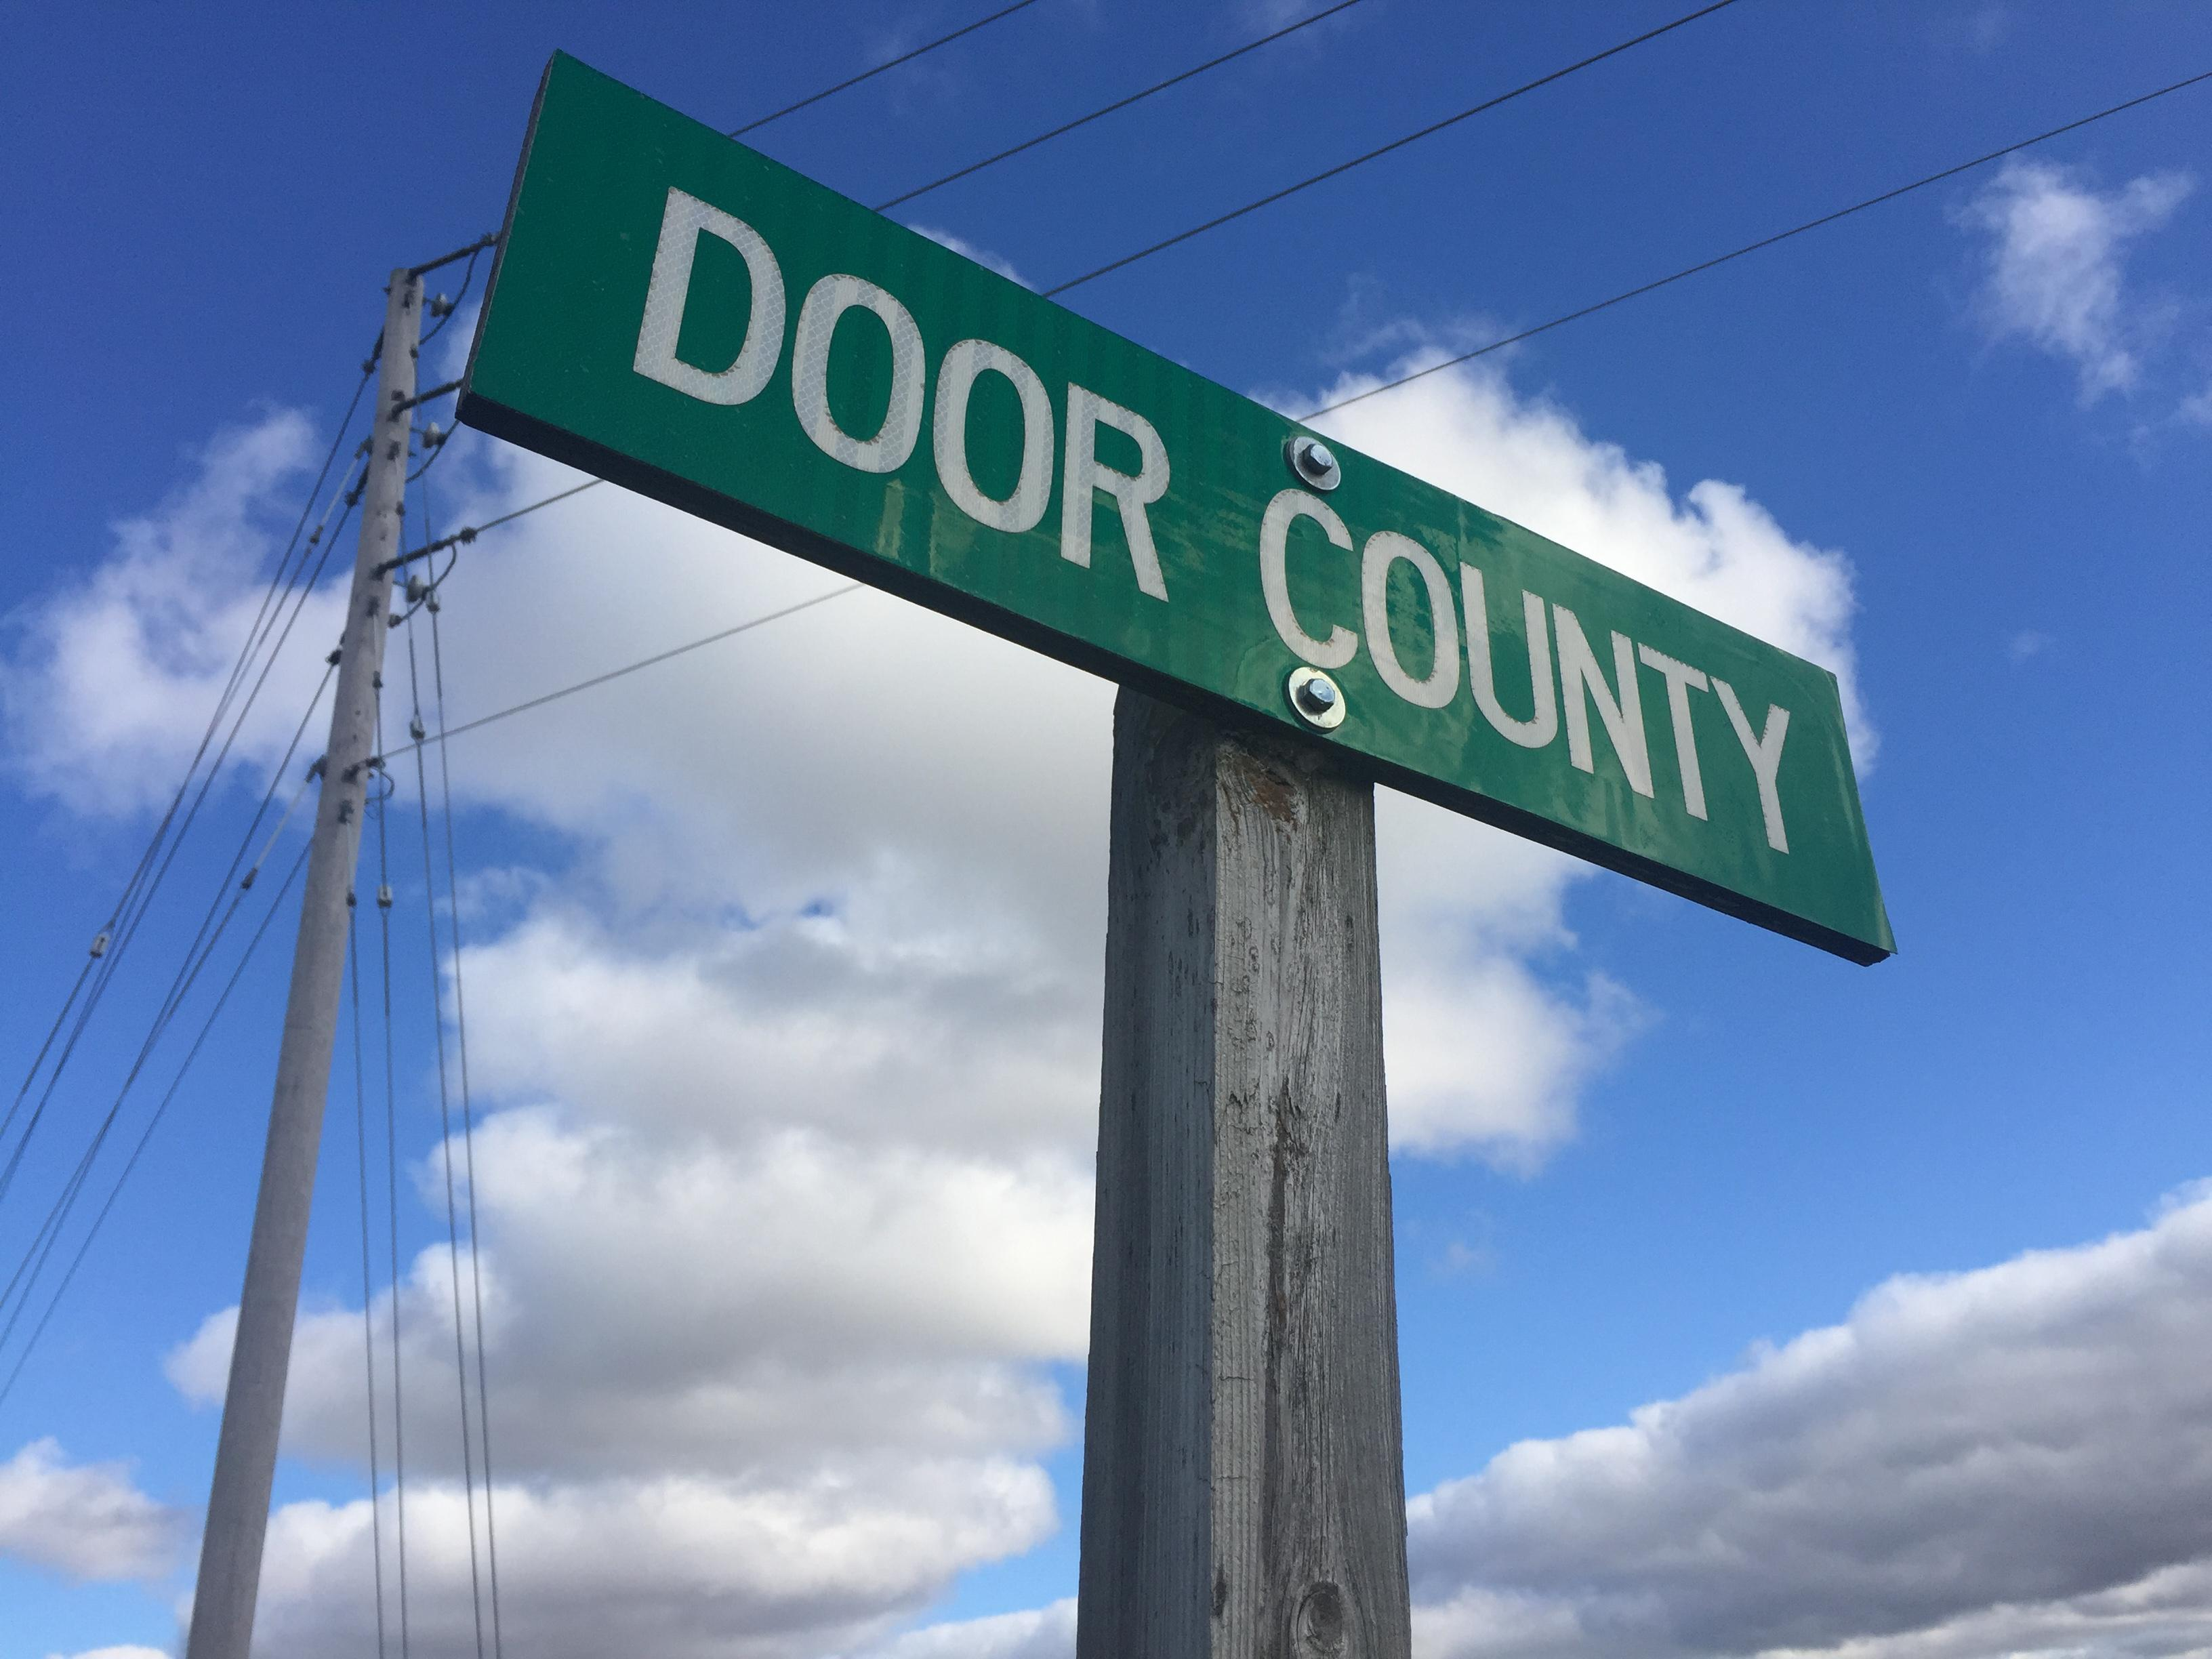 Door County sign, November 3, 2017 (WLUK/Eric Peterson)